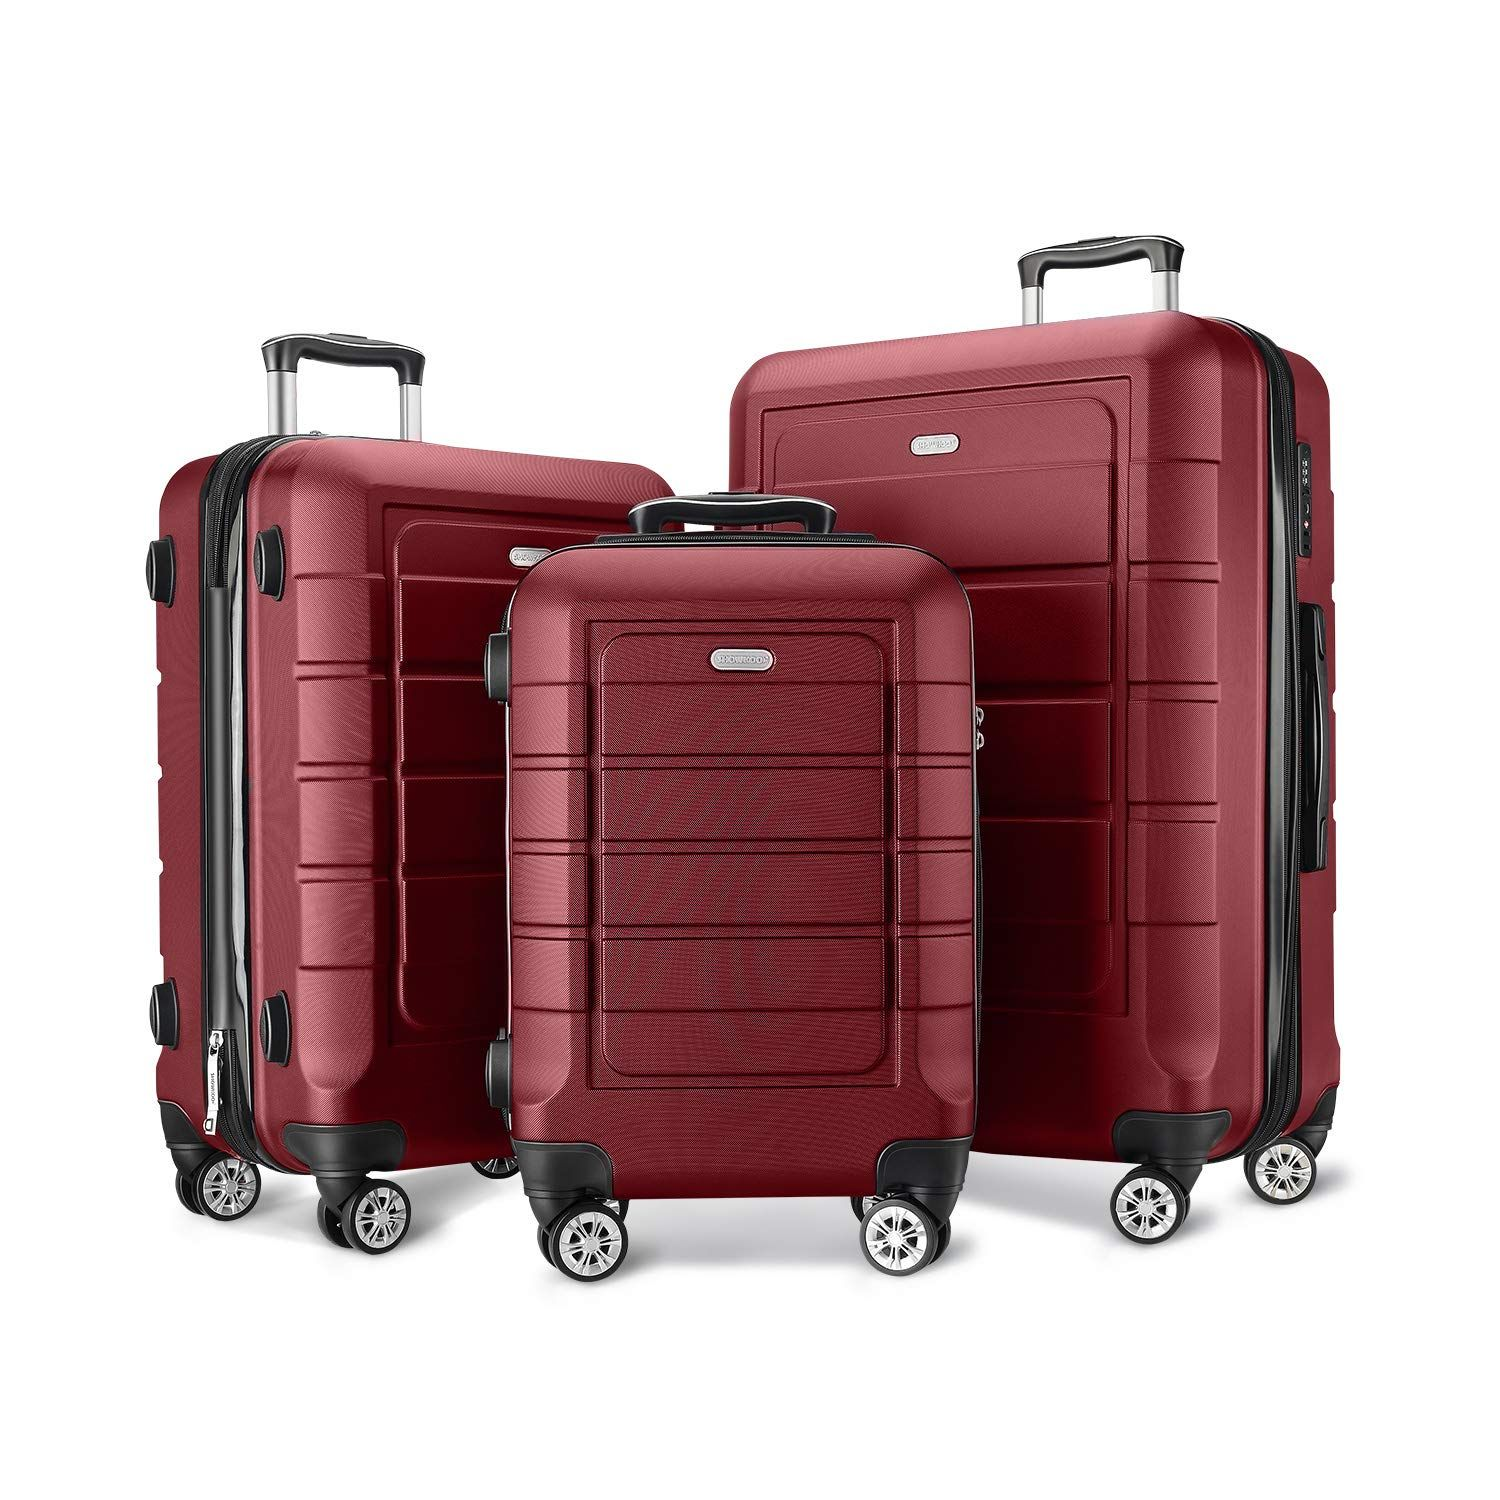 Showkoo Luggage Sets Expandable Pc Abs Durable Suitcase Double Wheels Tsa Lock Red Wine You Can Get More Details By Click In 2020 Luggage Sets Luggage Best Luggage